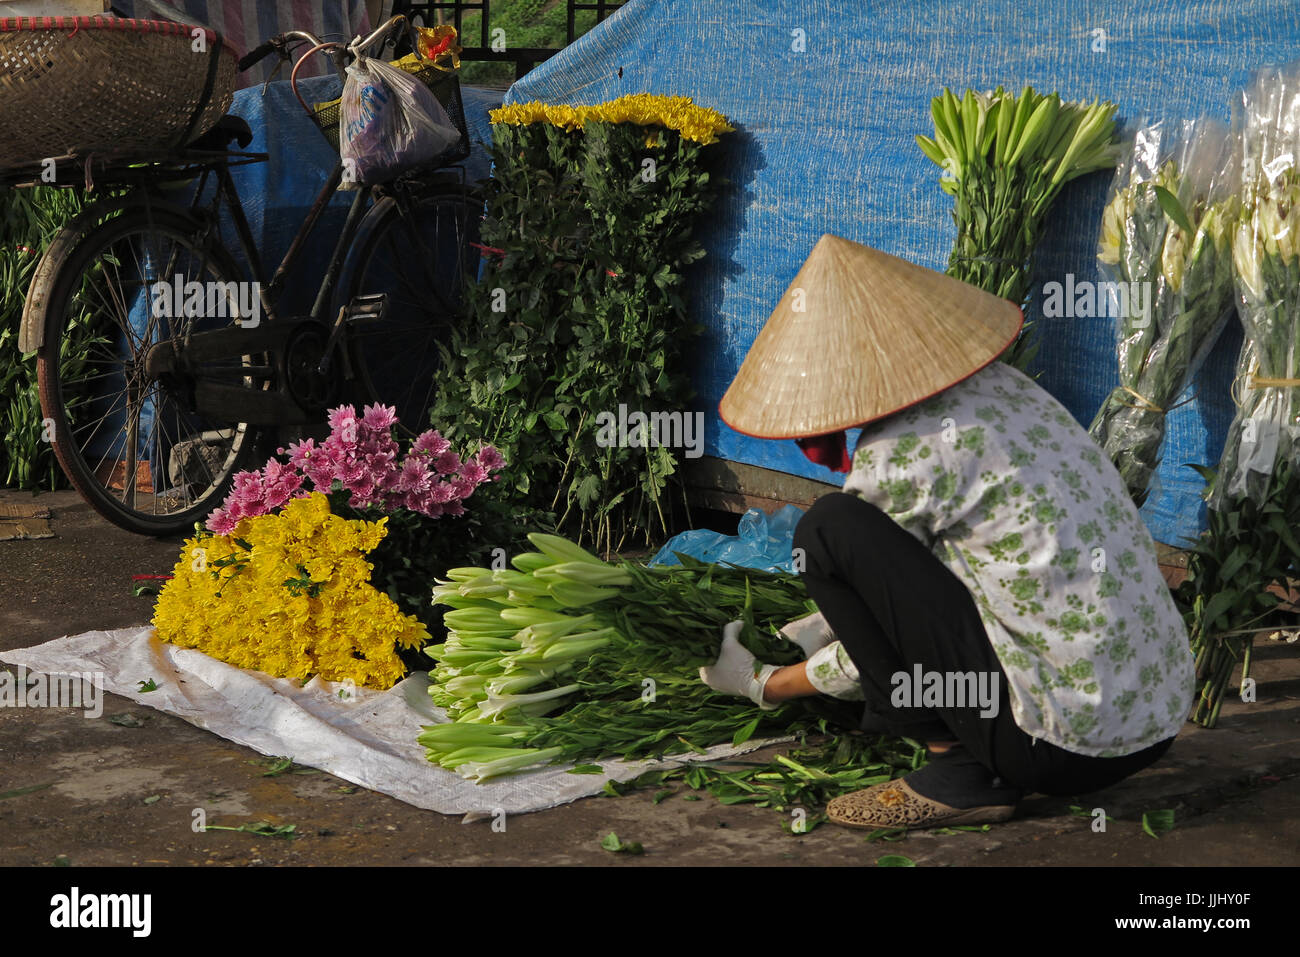 Early morning flower market scene at Hanoi Vietnam - Stock Image